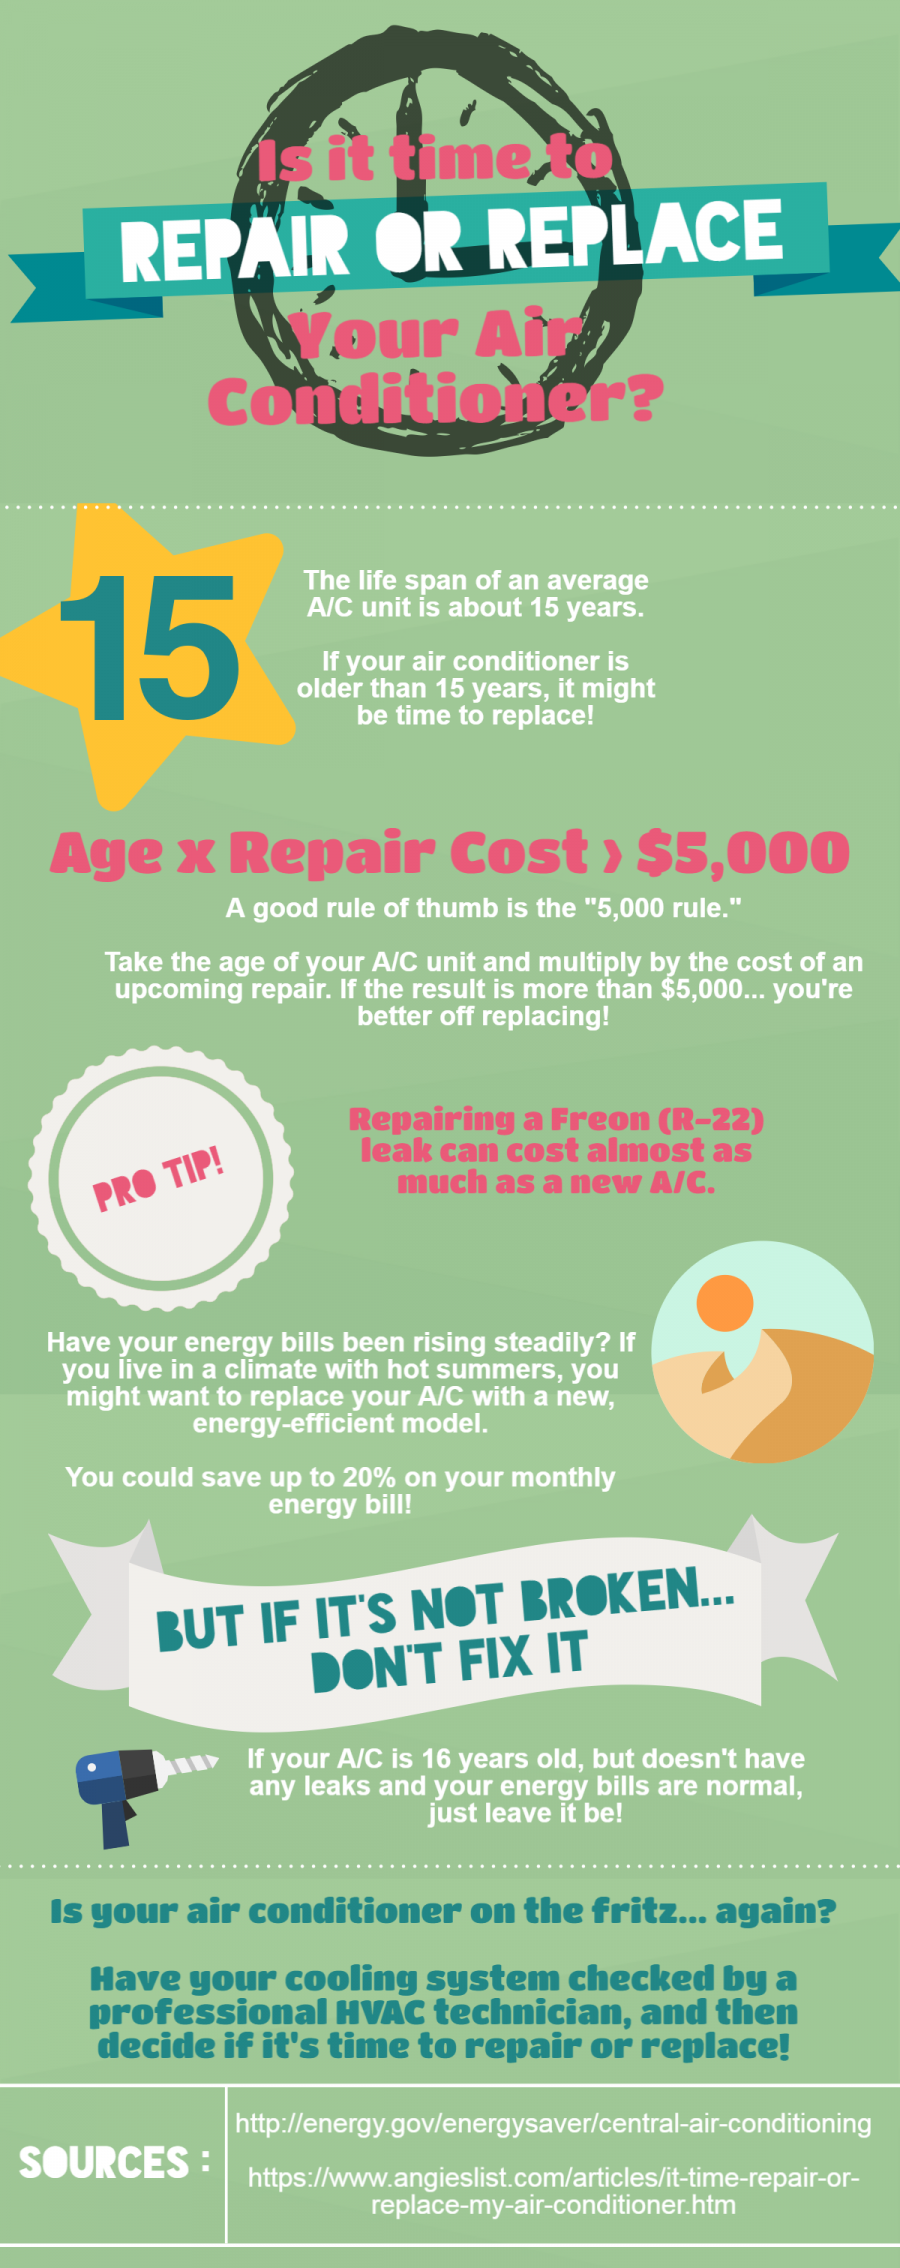 Is it Time to Repair or Replace Your Air Conditioner?